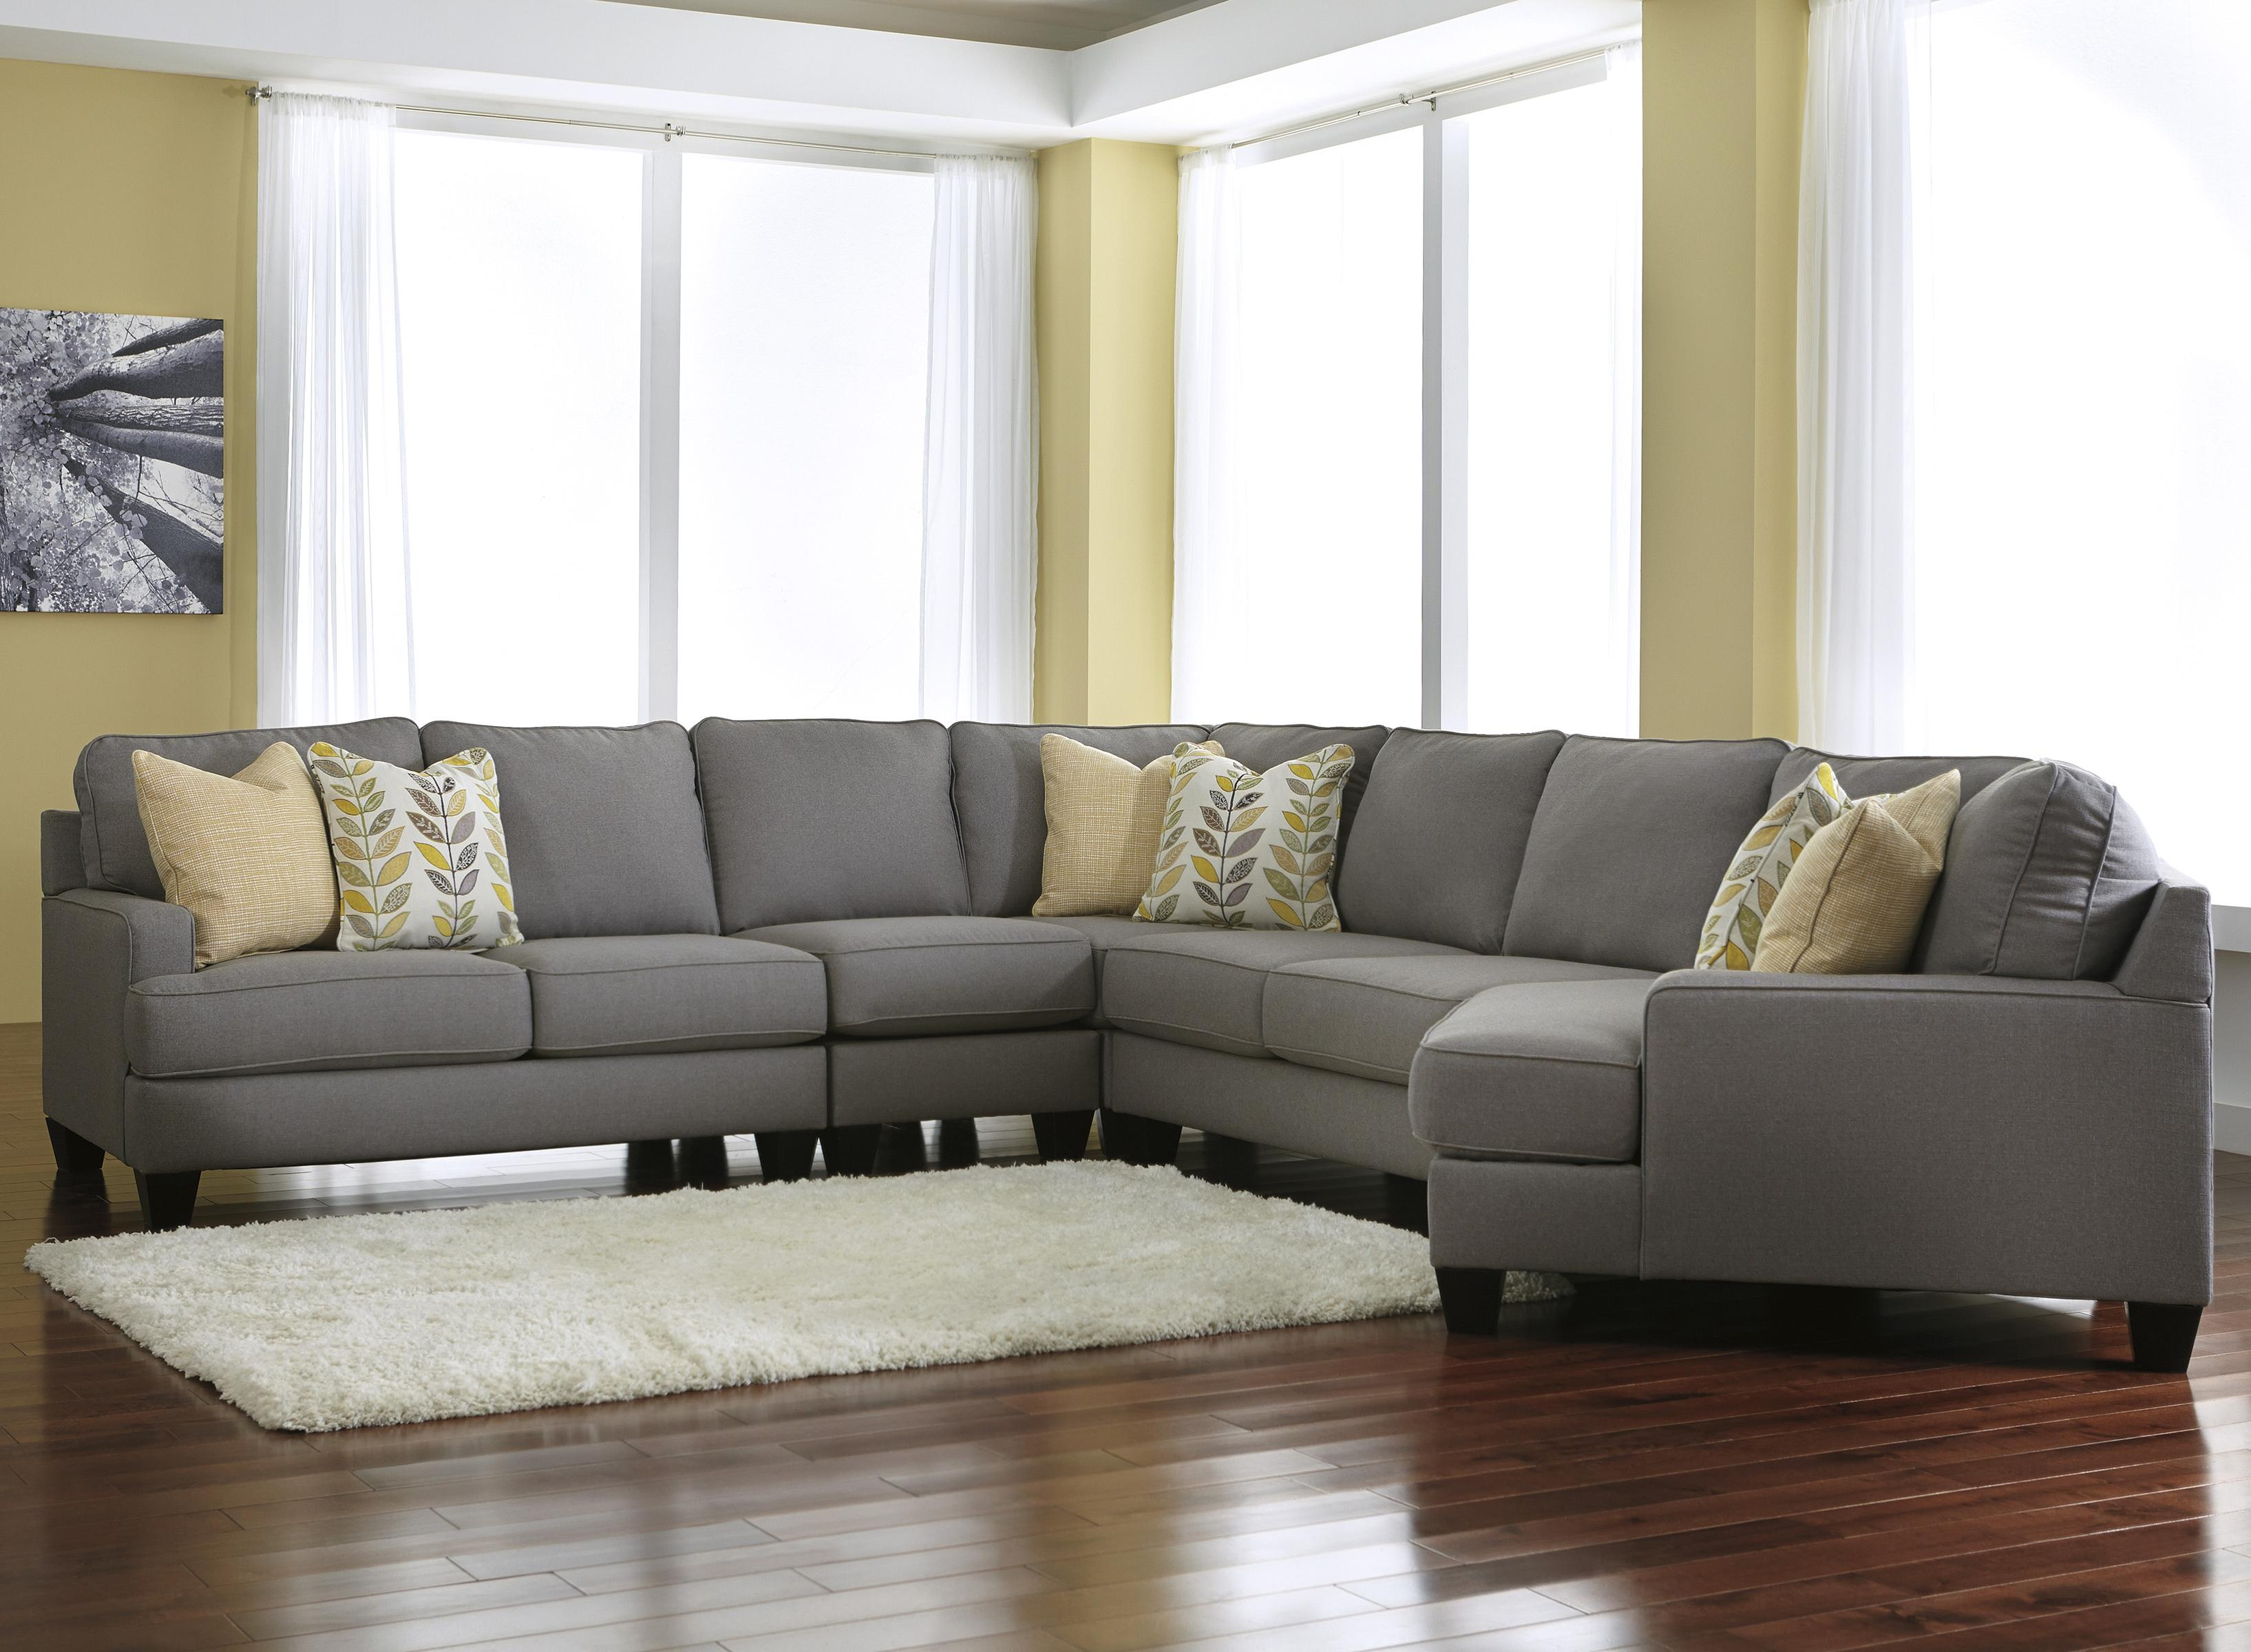 Modern 5-Piece Sectional Sofa With Right Cuddler